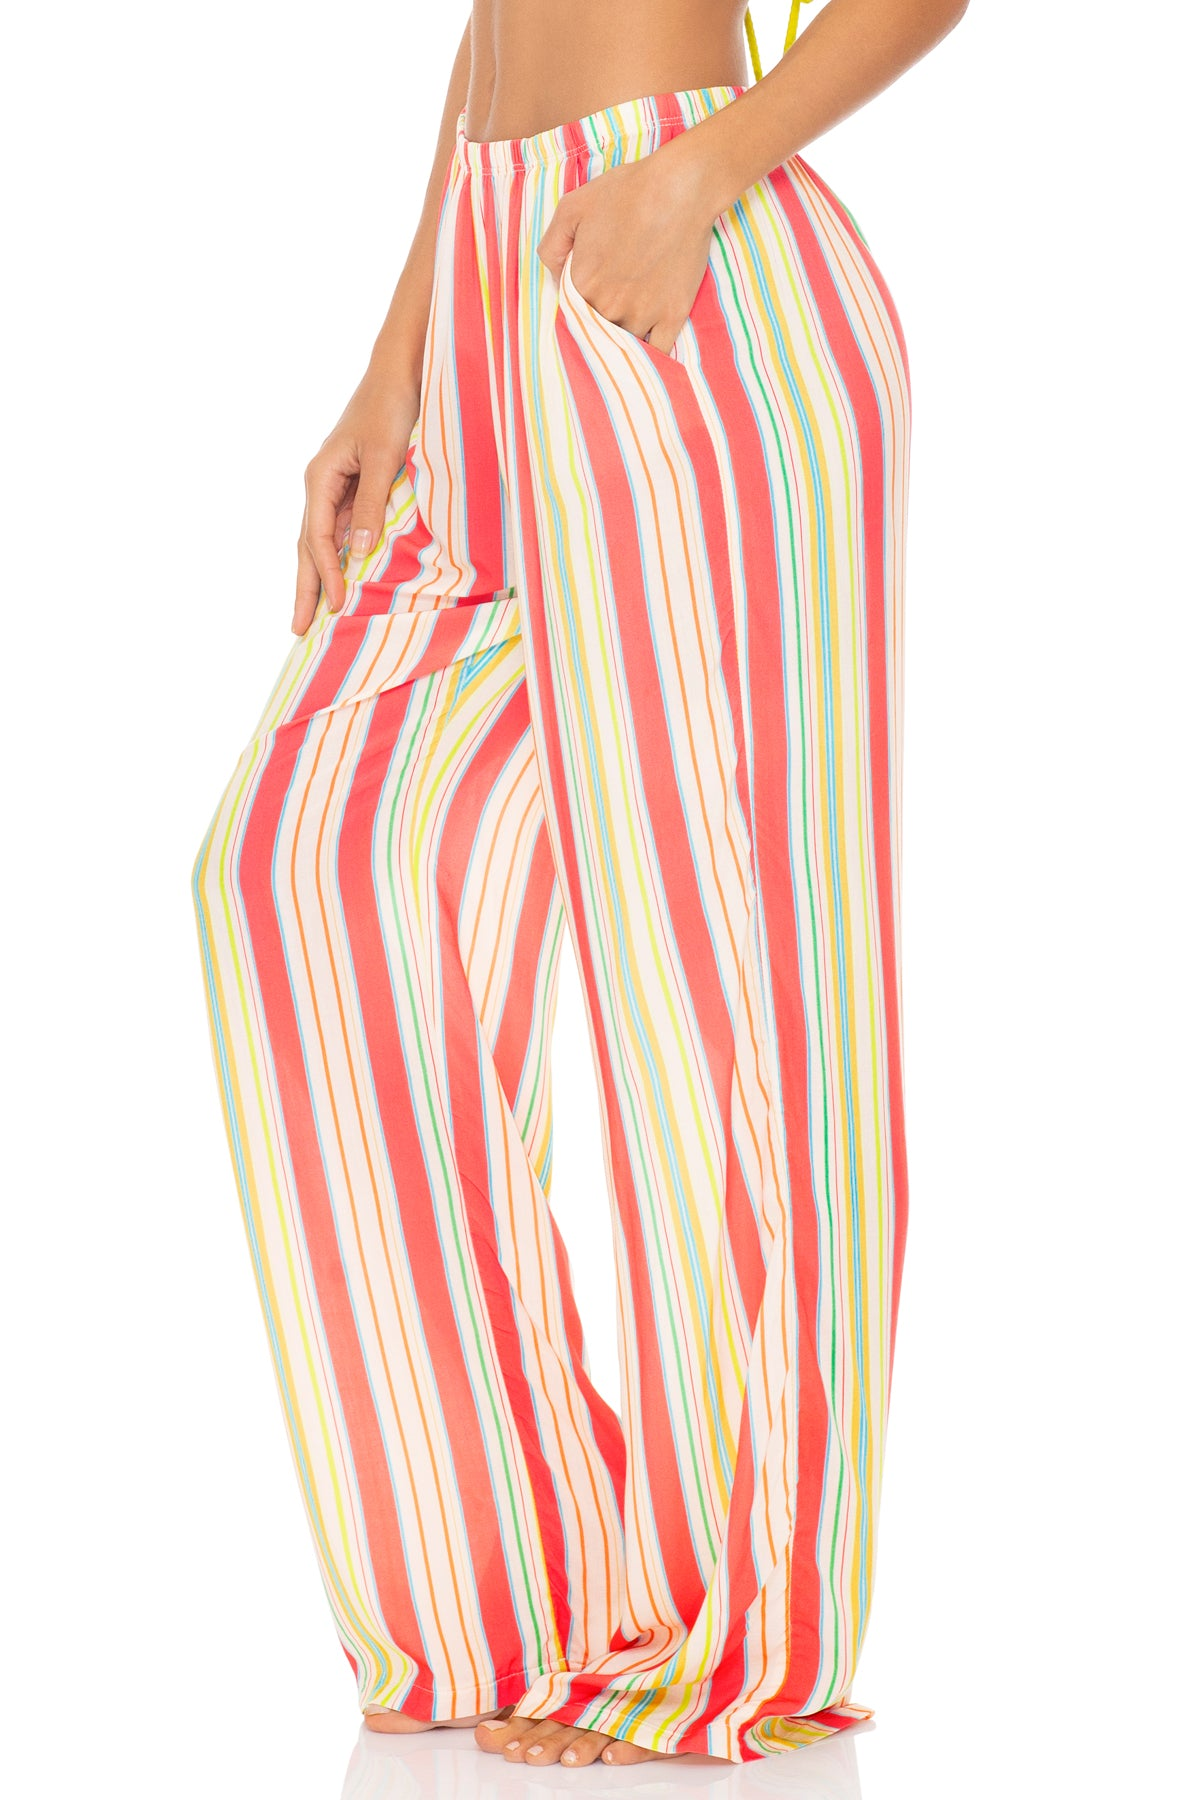 PLAY TIME - Flare Bottom Pants • Multi White